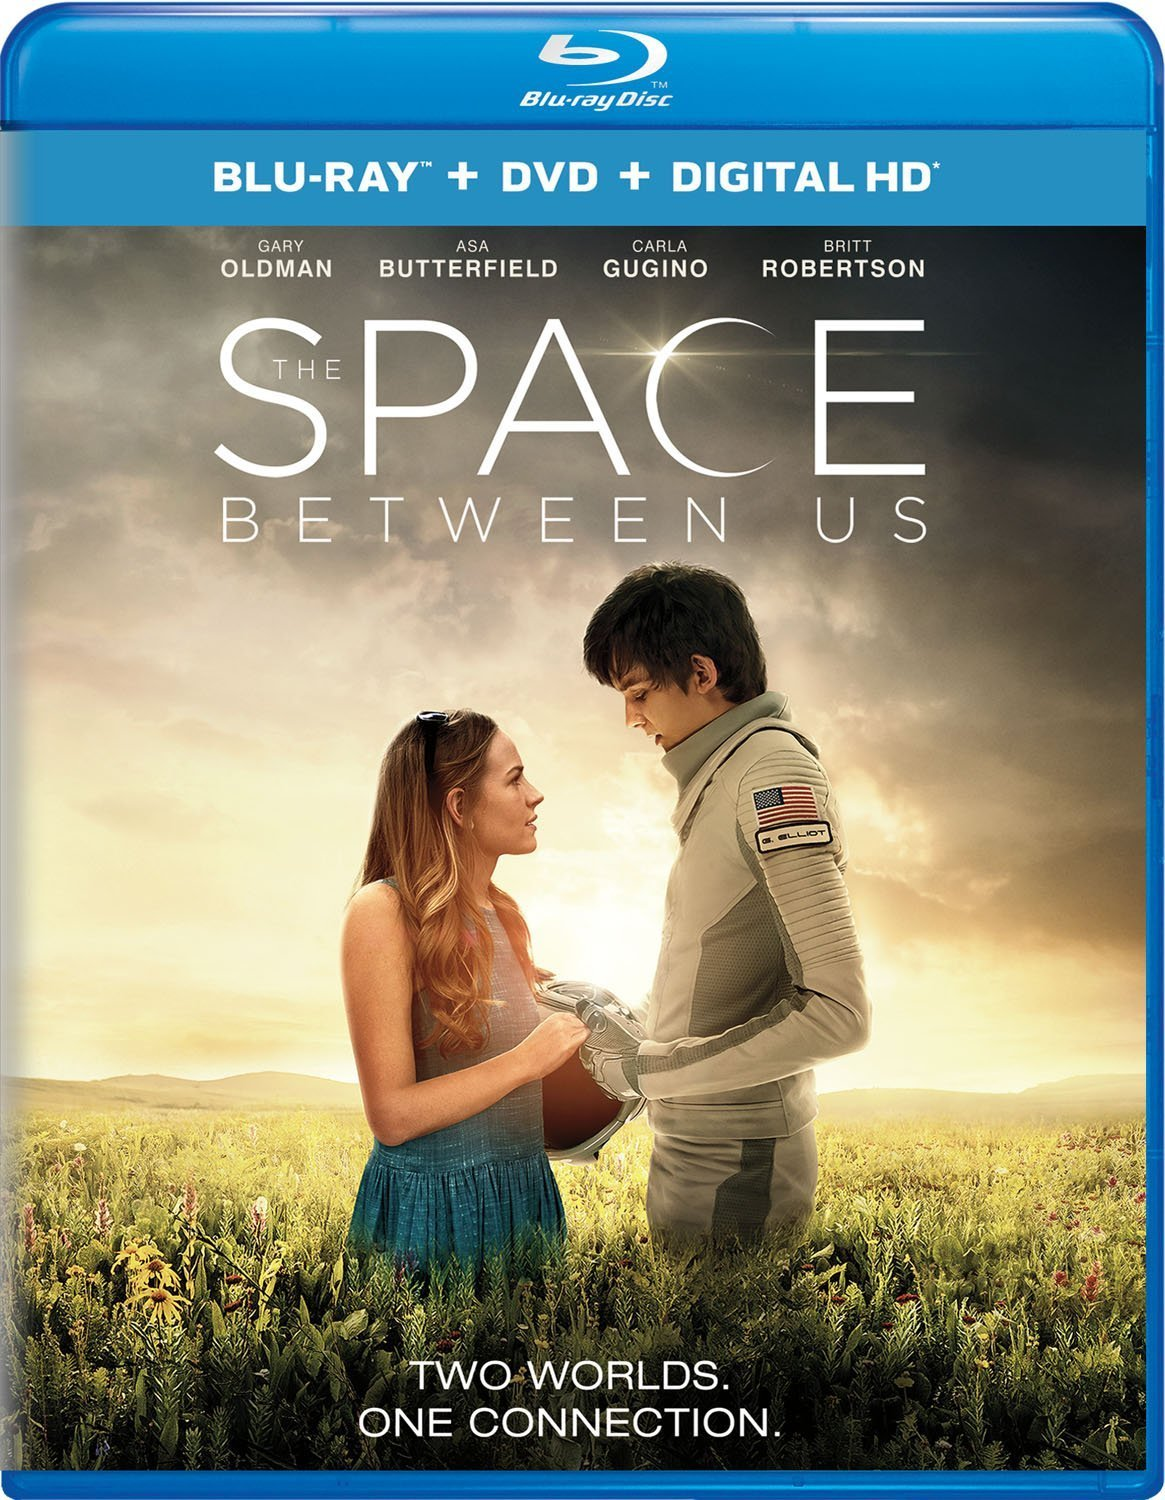 The Space Between Us (2017) poster image